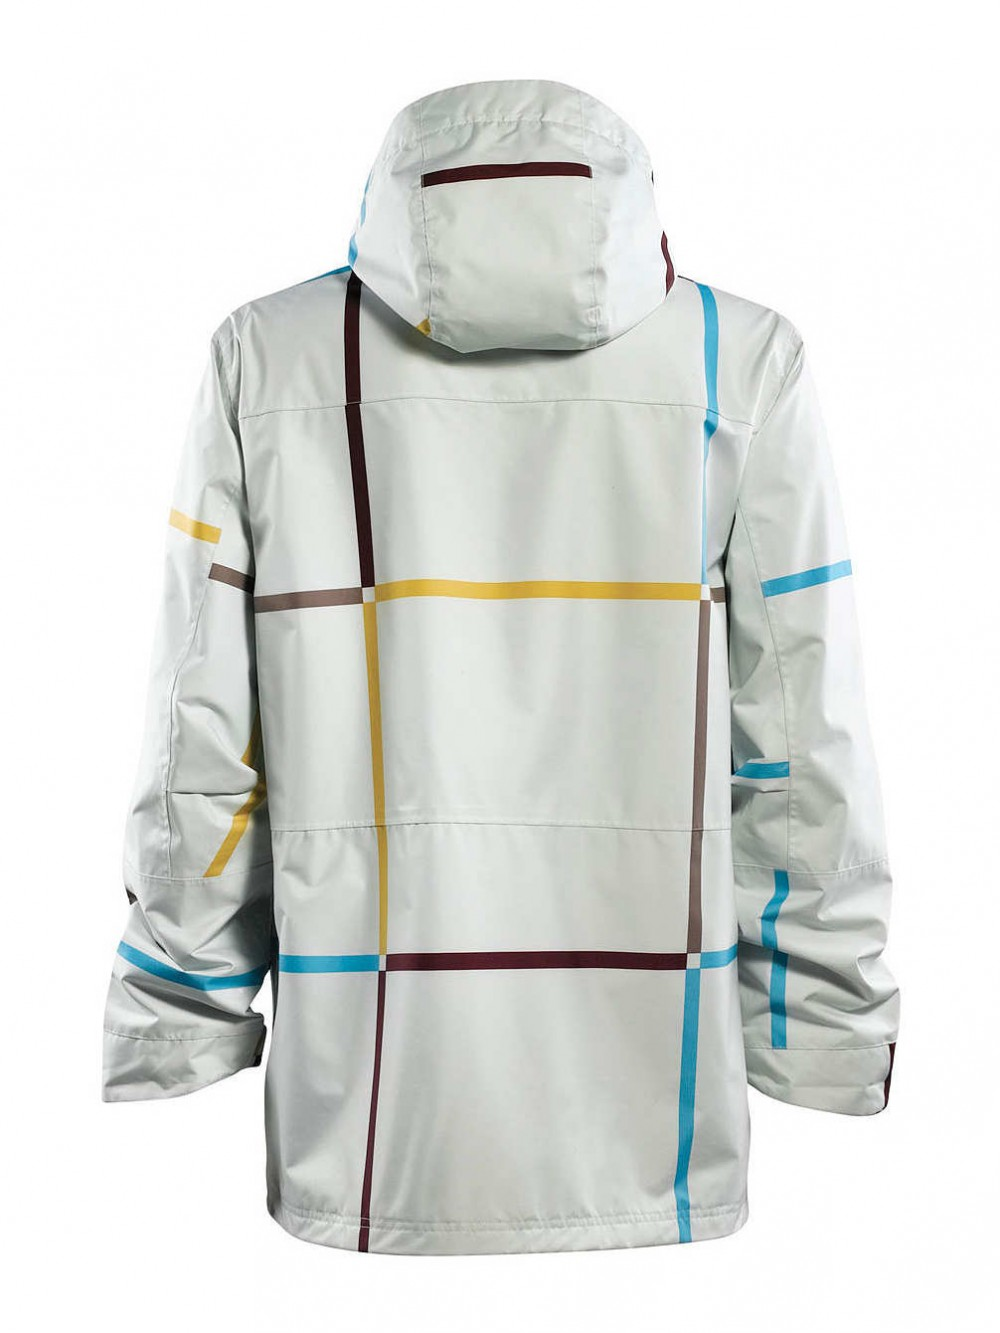 Куртка FOURSQUARE vise jacket (размер L) - 1